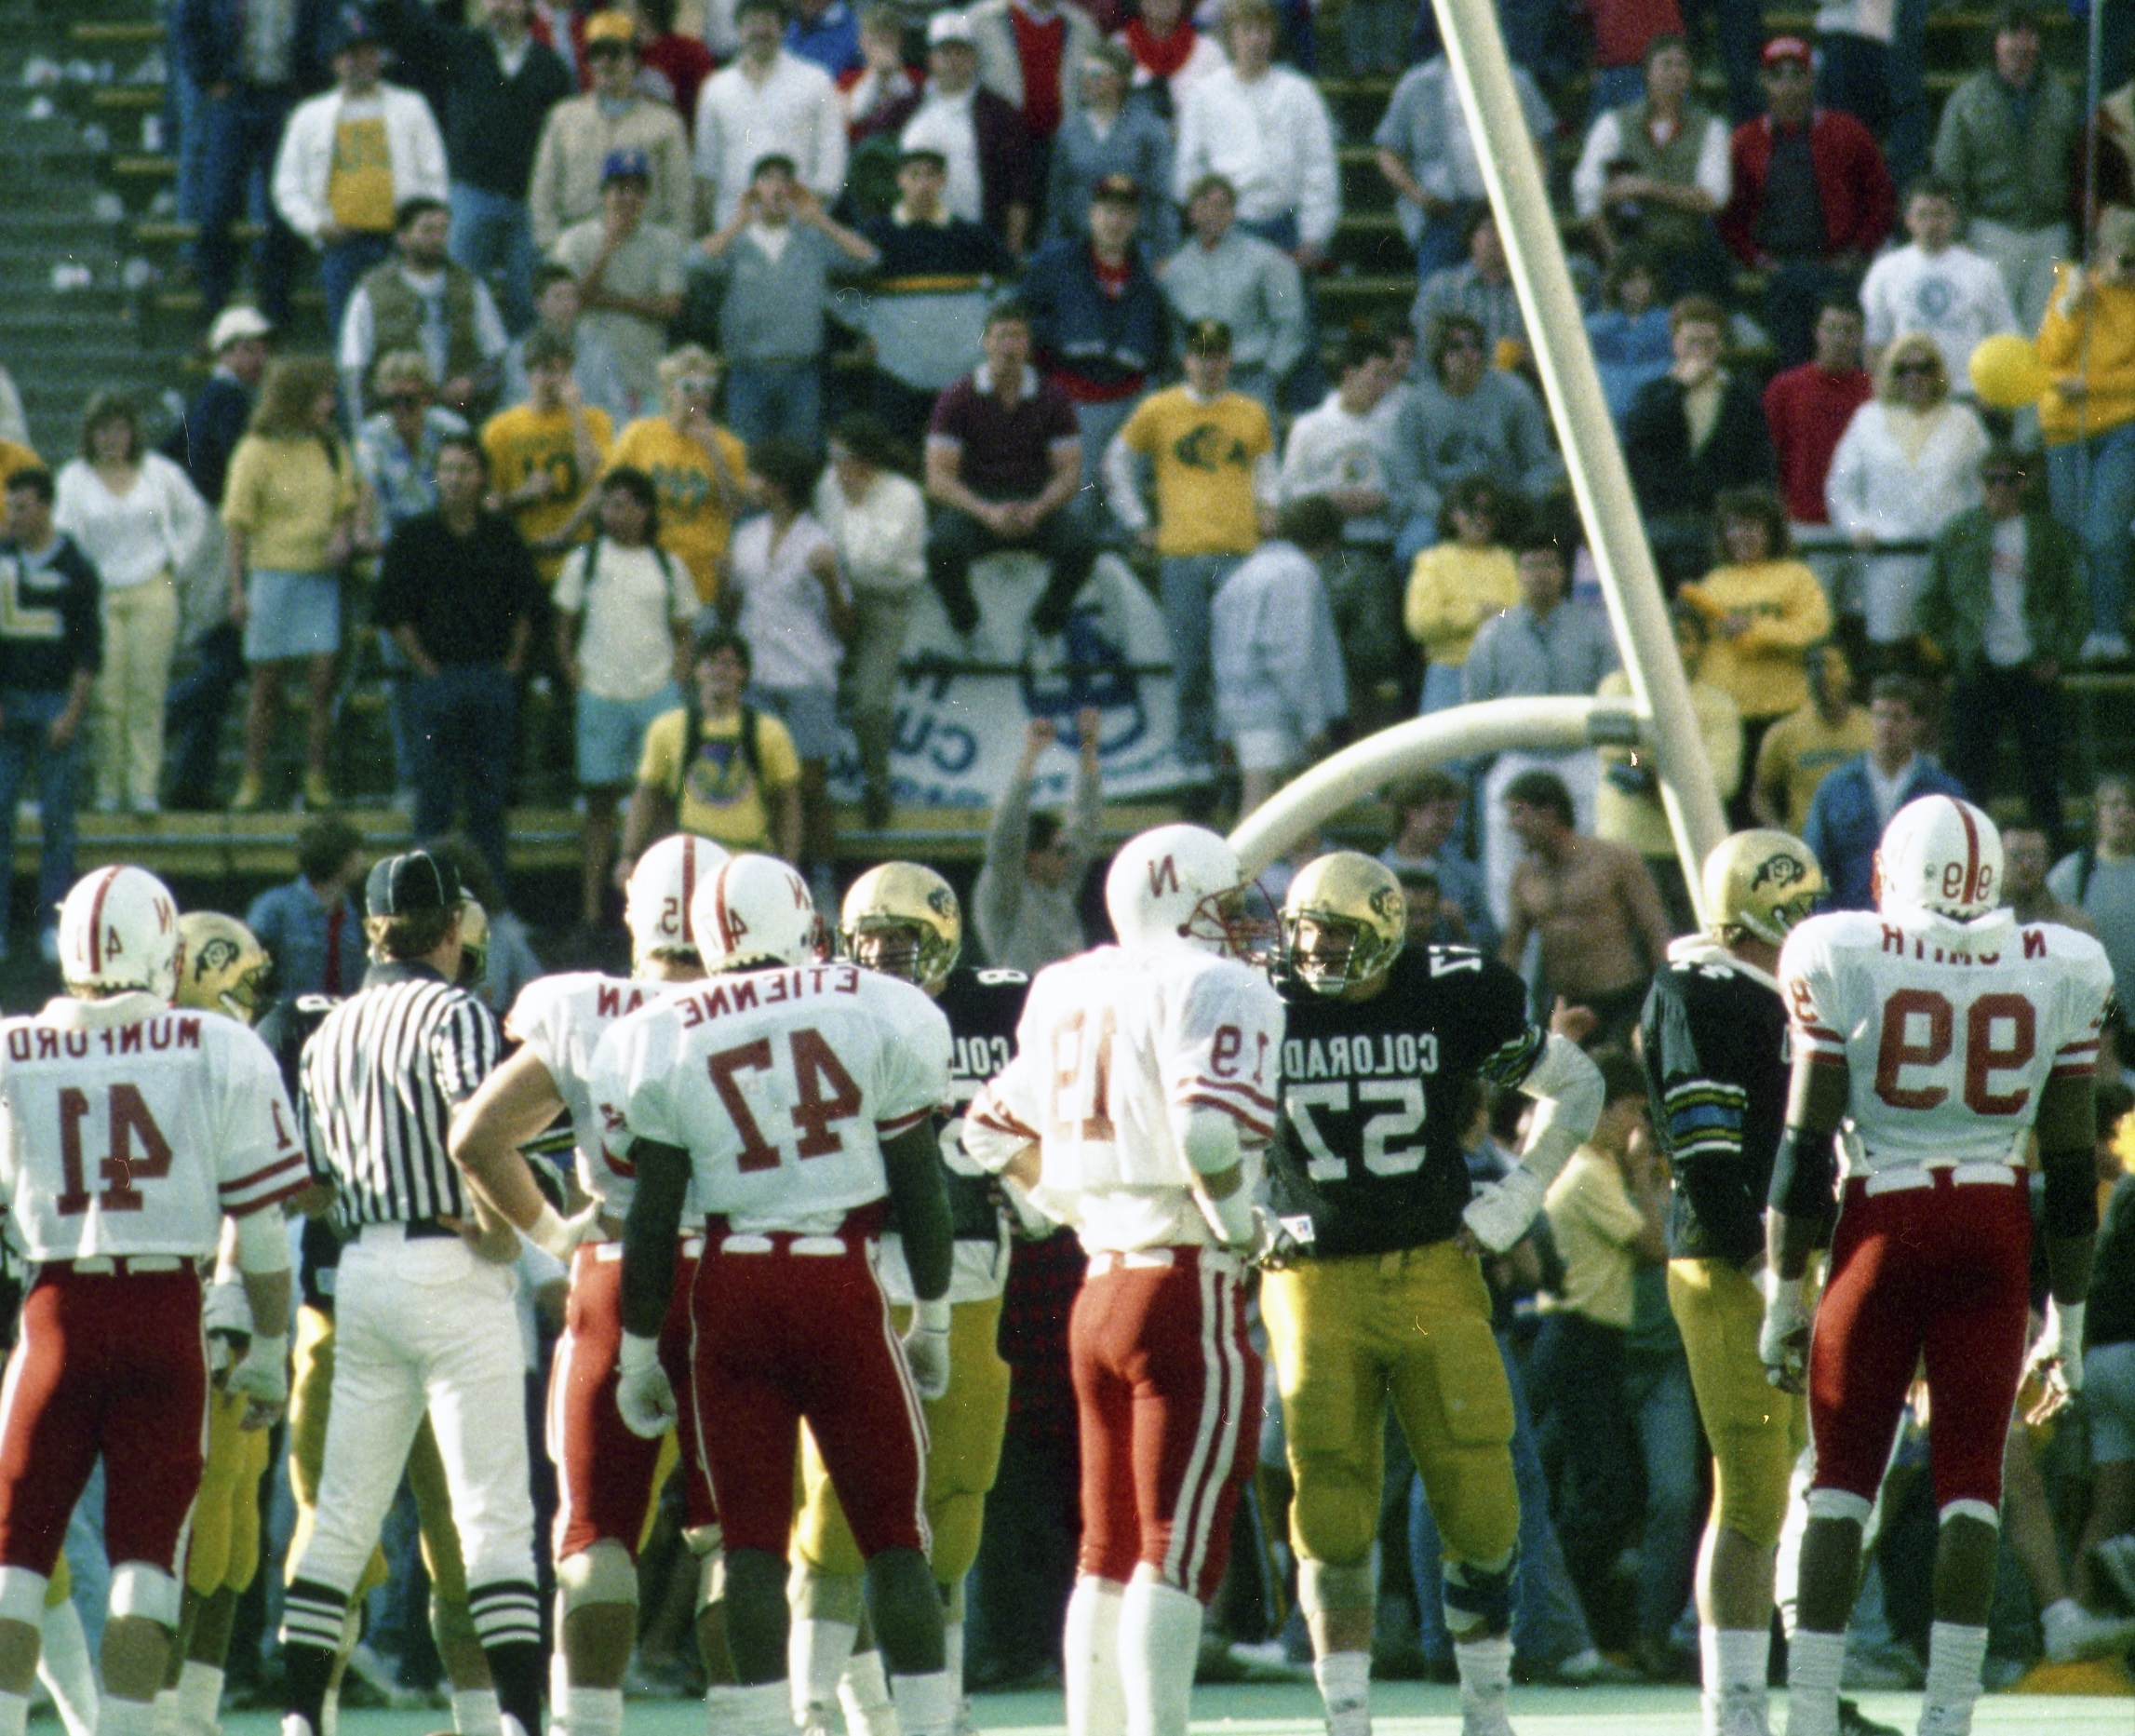 An archive photo from the 1986 CU vs. Nebraska game where fans rushed the field, toppling over a goal post.